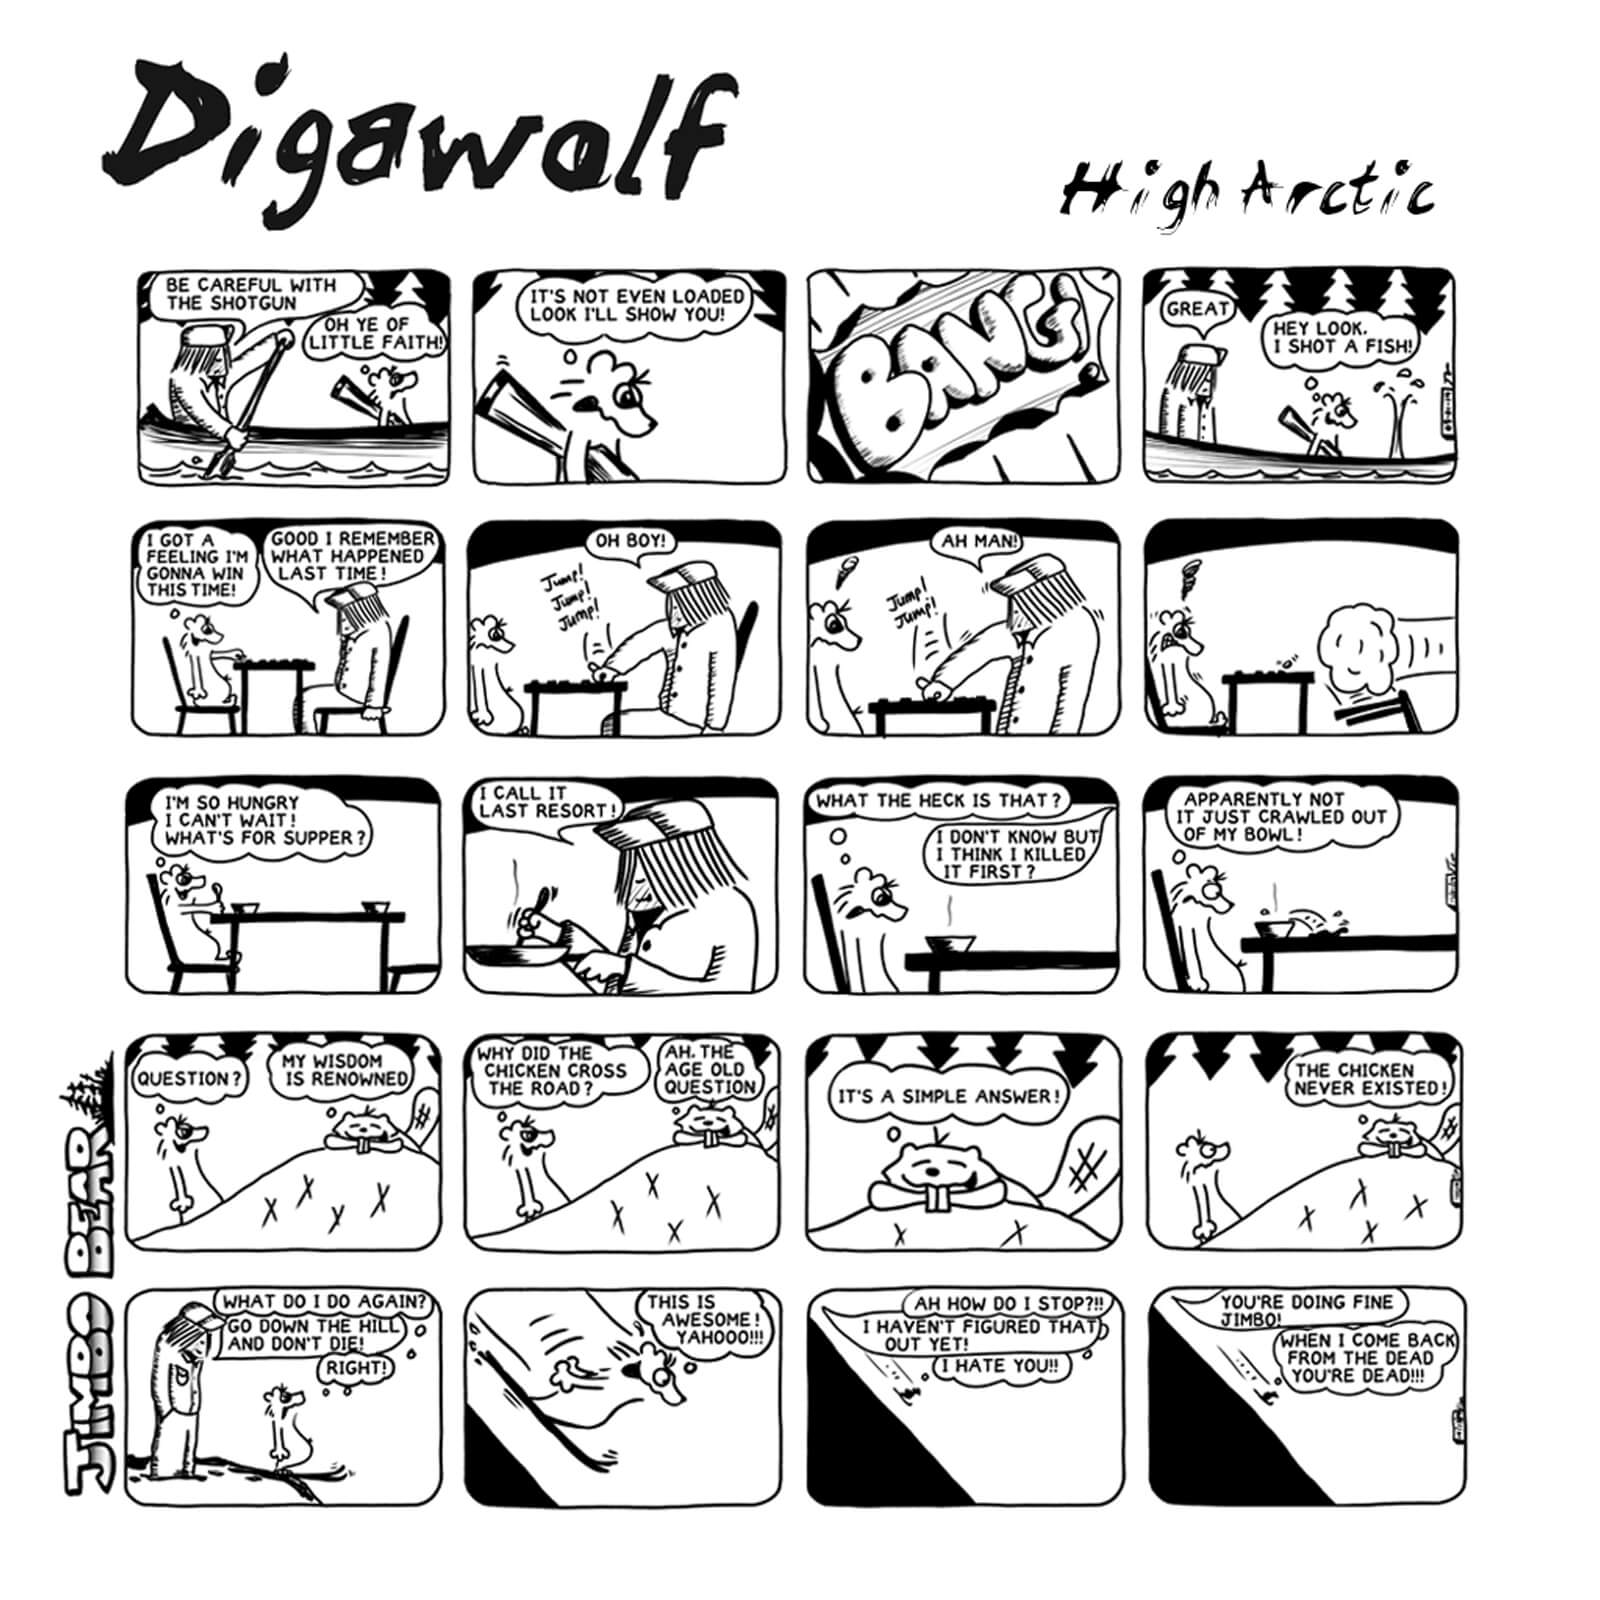 High Arctic by Digawolf album review by Steven Ovadia. The Canadian artist's new release is now available via streaming services